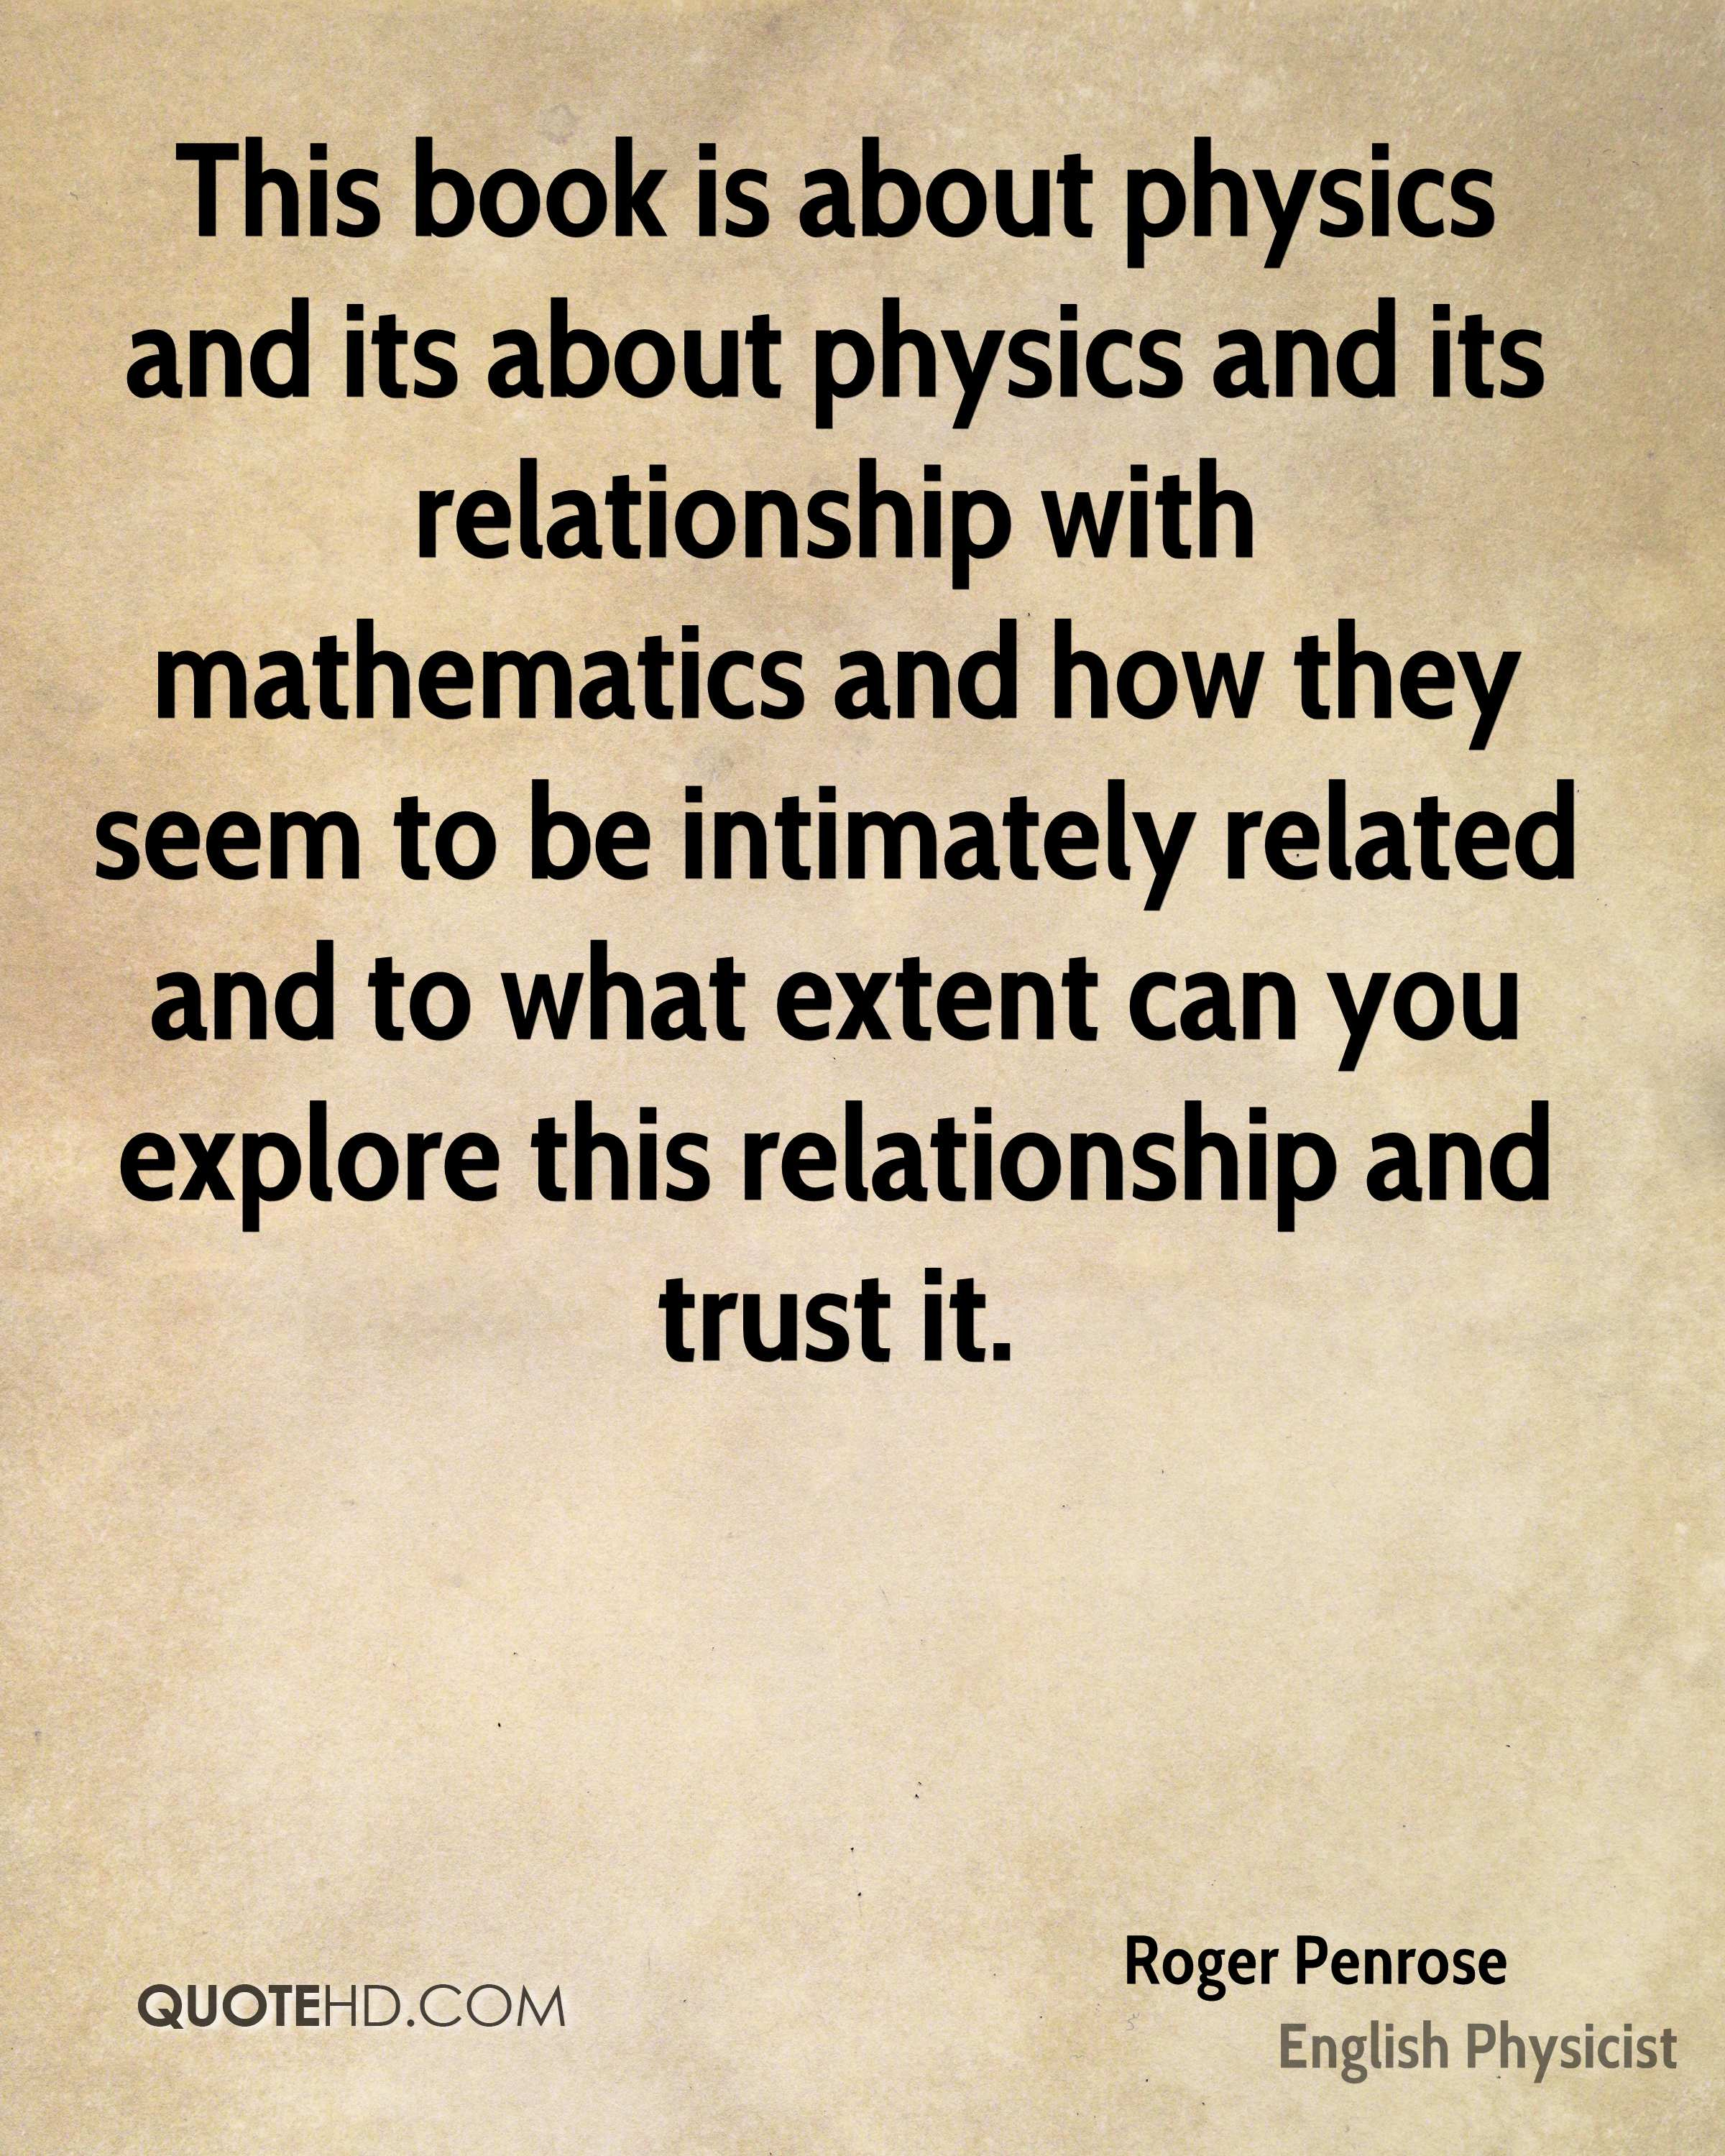 This book is about physics and its about physics and its relationship with mathematics and how they seem to be intimately related and to what extent can you explore this relationship and trust it.